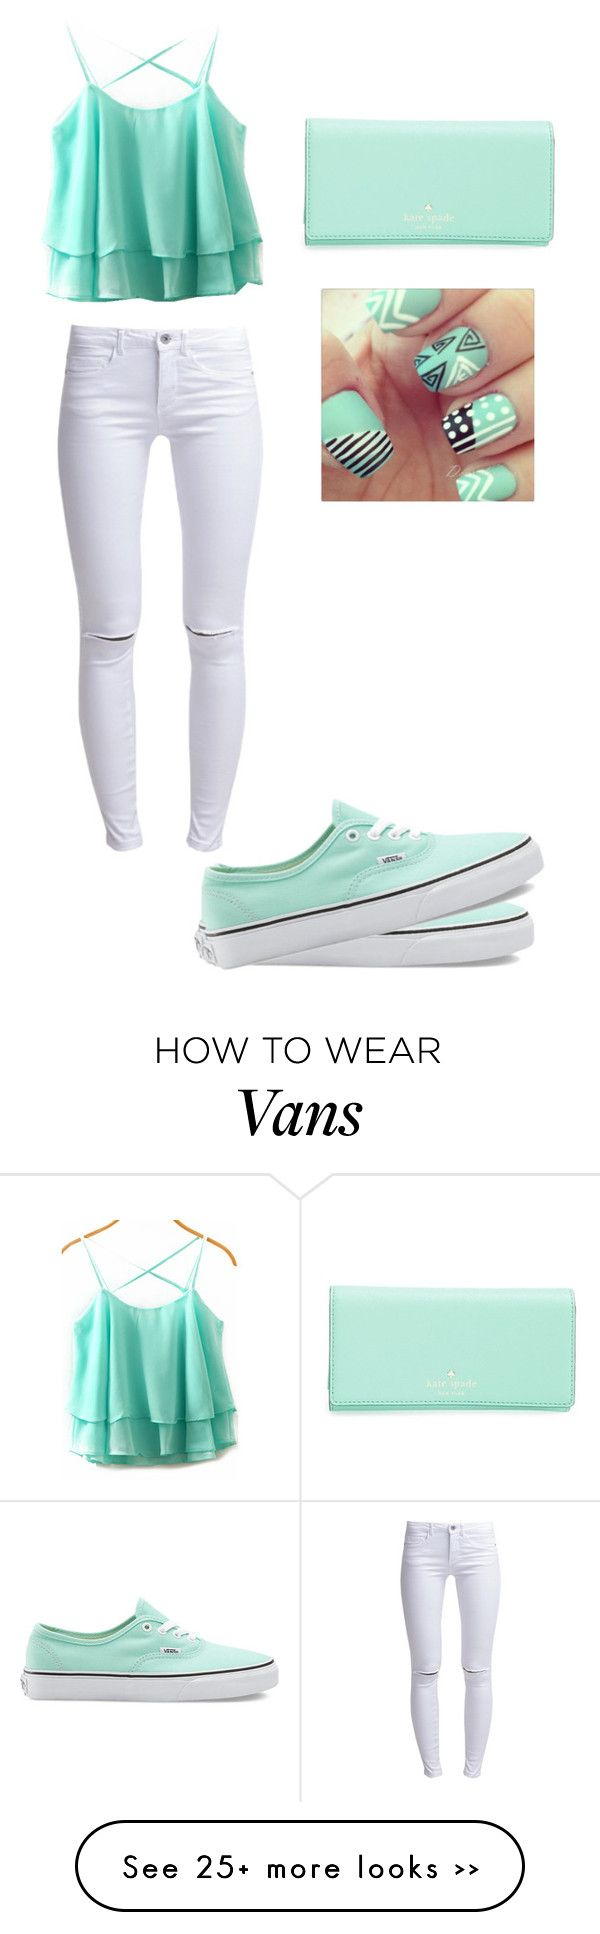 """Untitled #370"" by hdflynn on Polyvore"